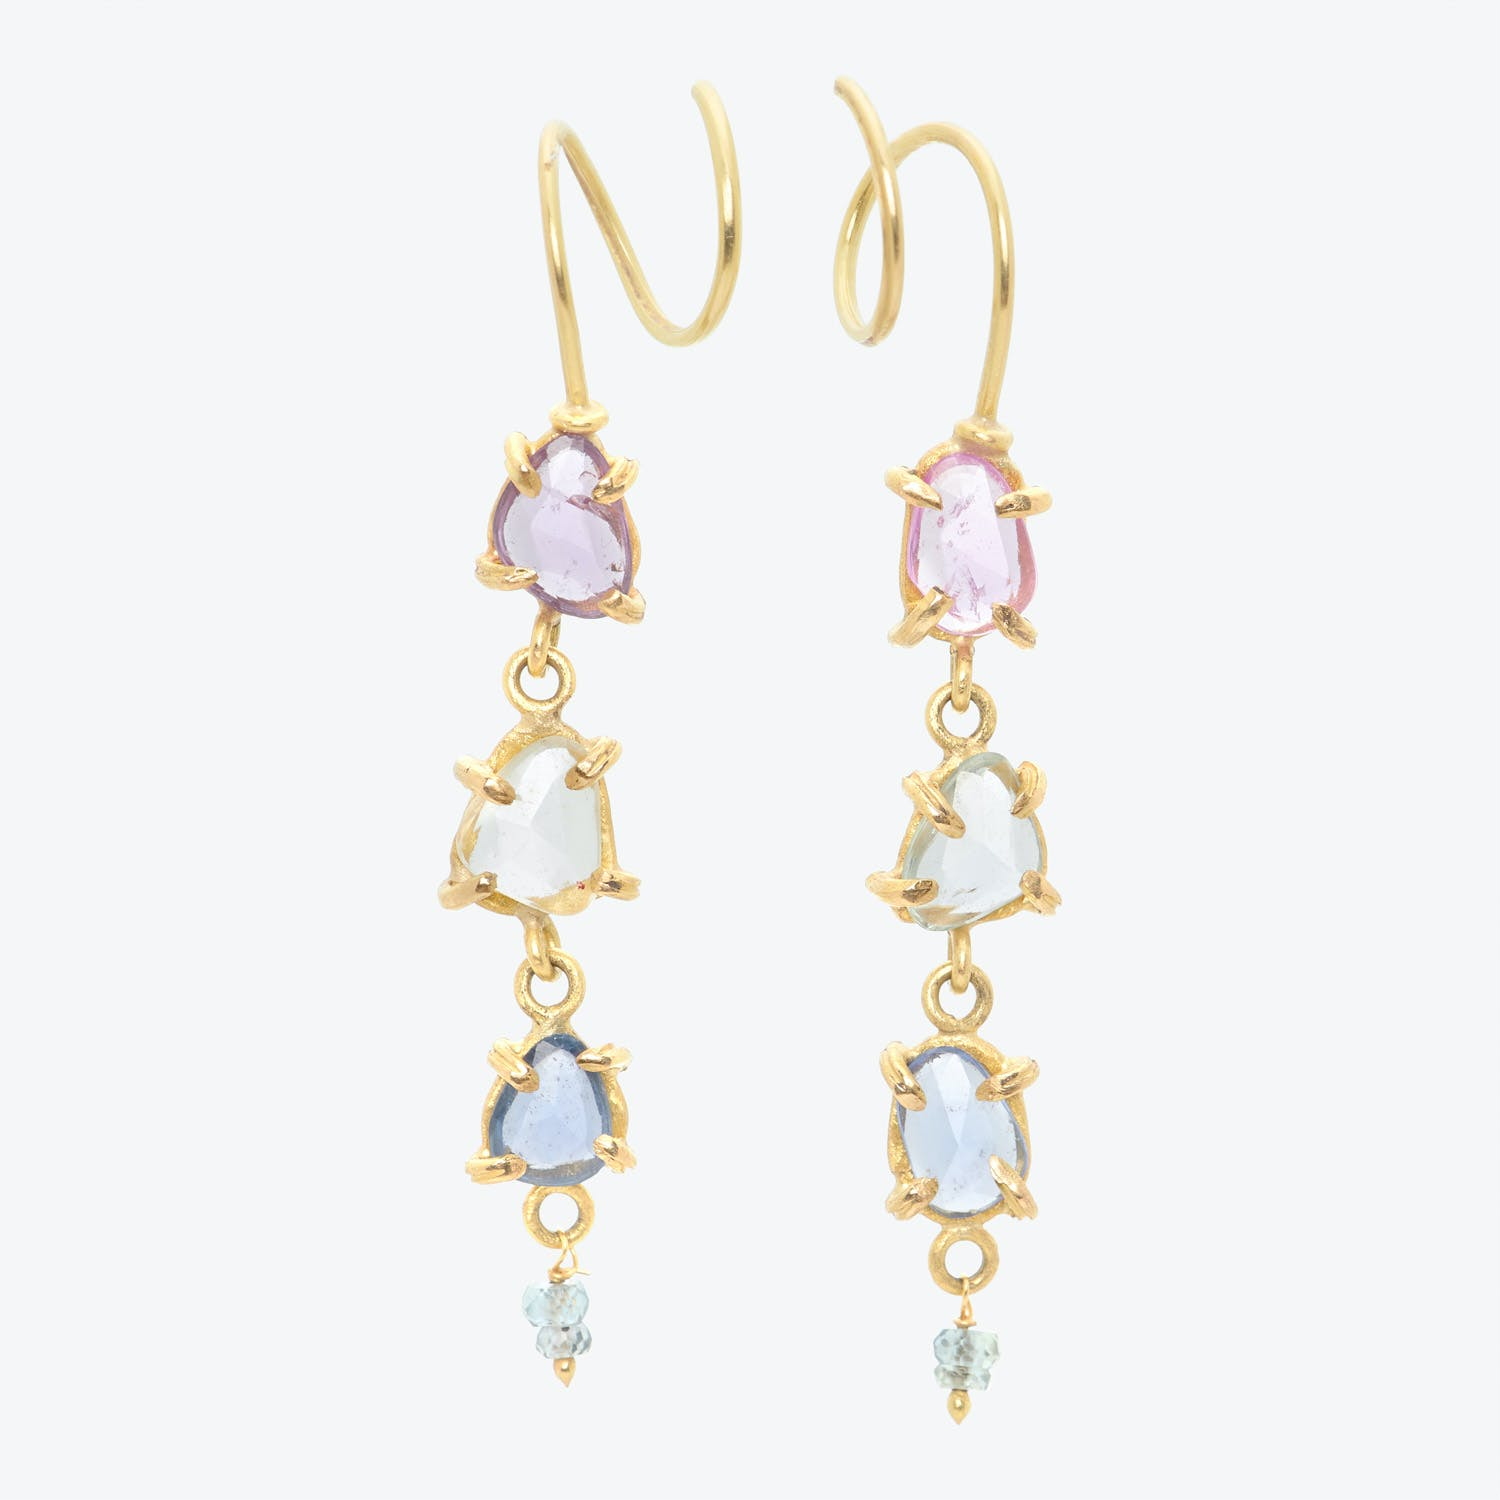 Lene Vibe One-of-a-kind Multi-colored Sapphire 4-Drop Earrings